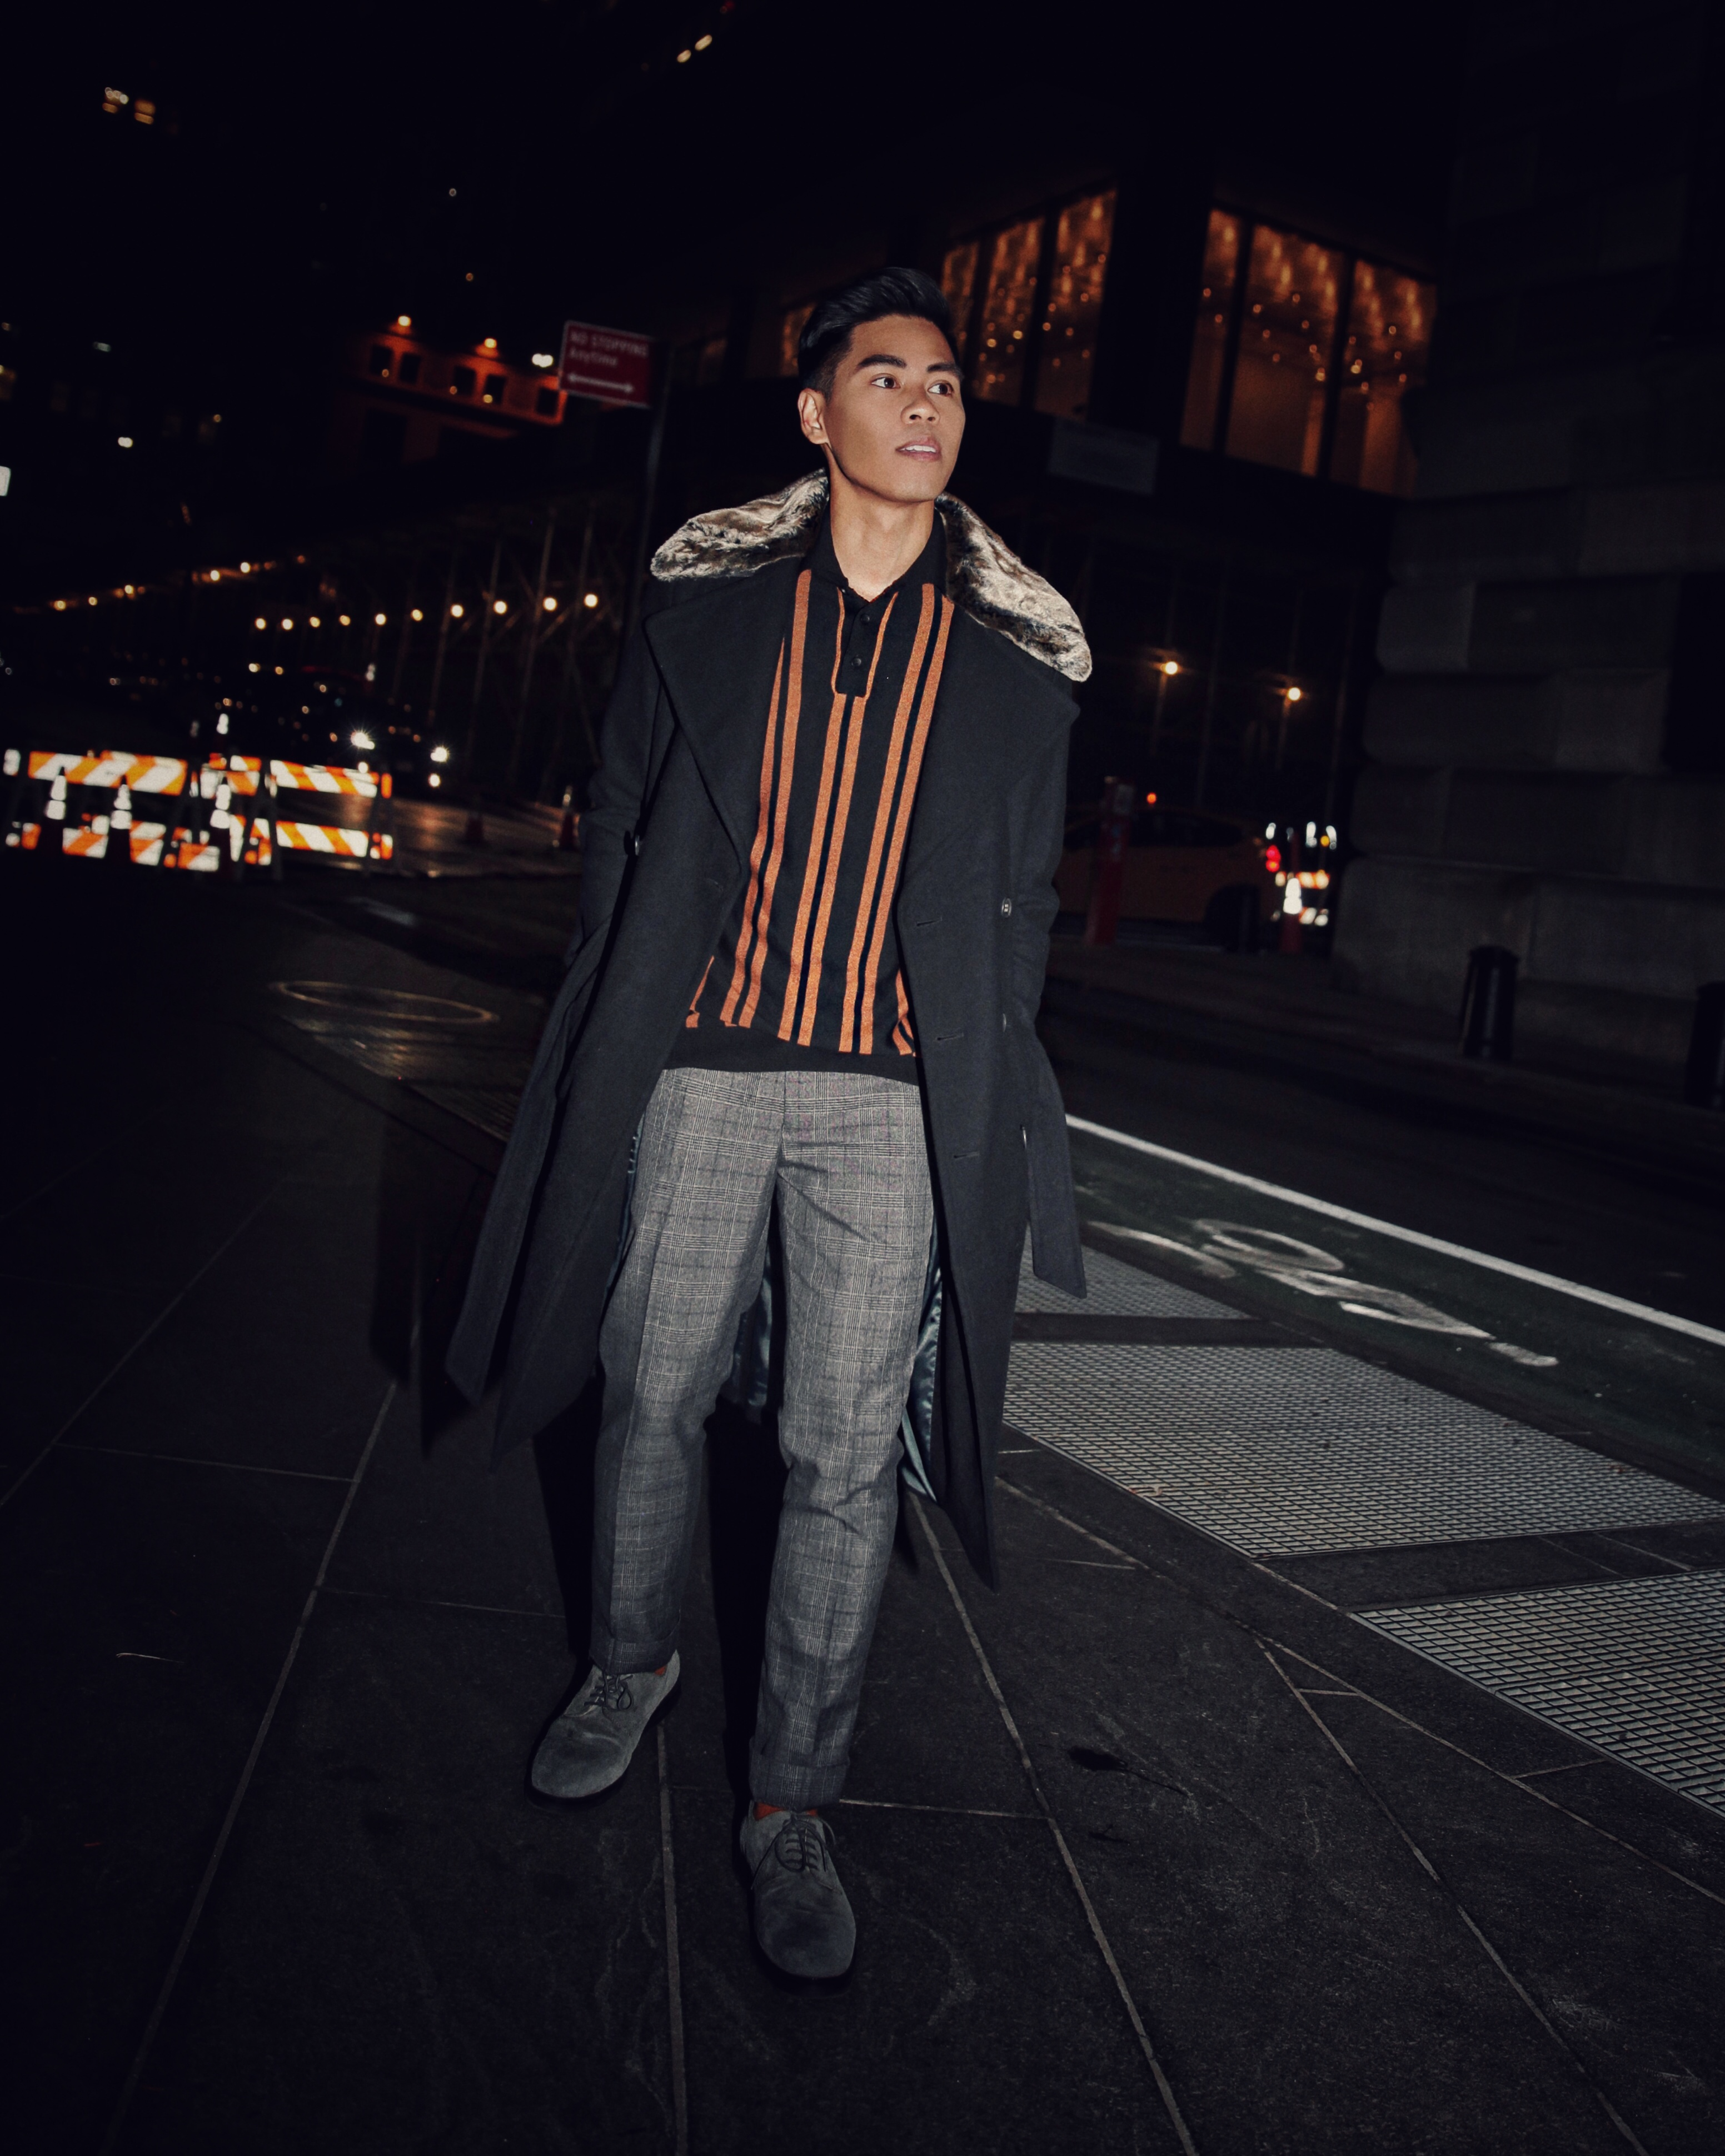 festive holiday party attire for guys street style blogger